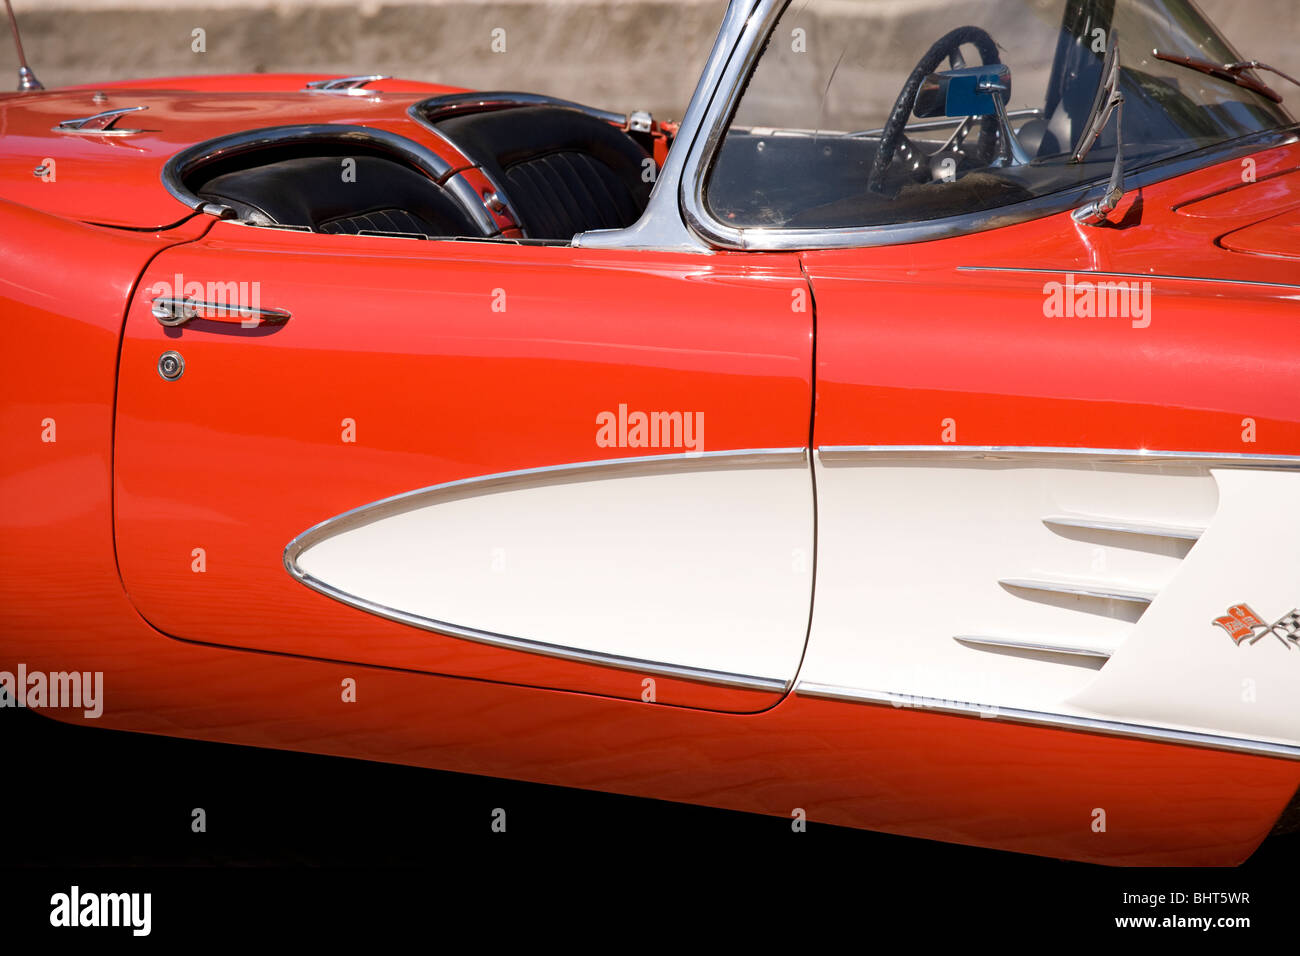 Red vintage Chevrolet Corvette convertible. C1 body from 1958, 59 or 1960. Roman Red with white coves. - Stock Image